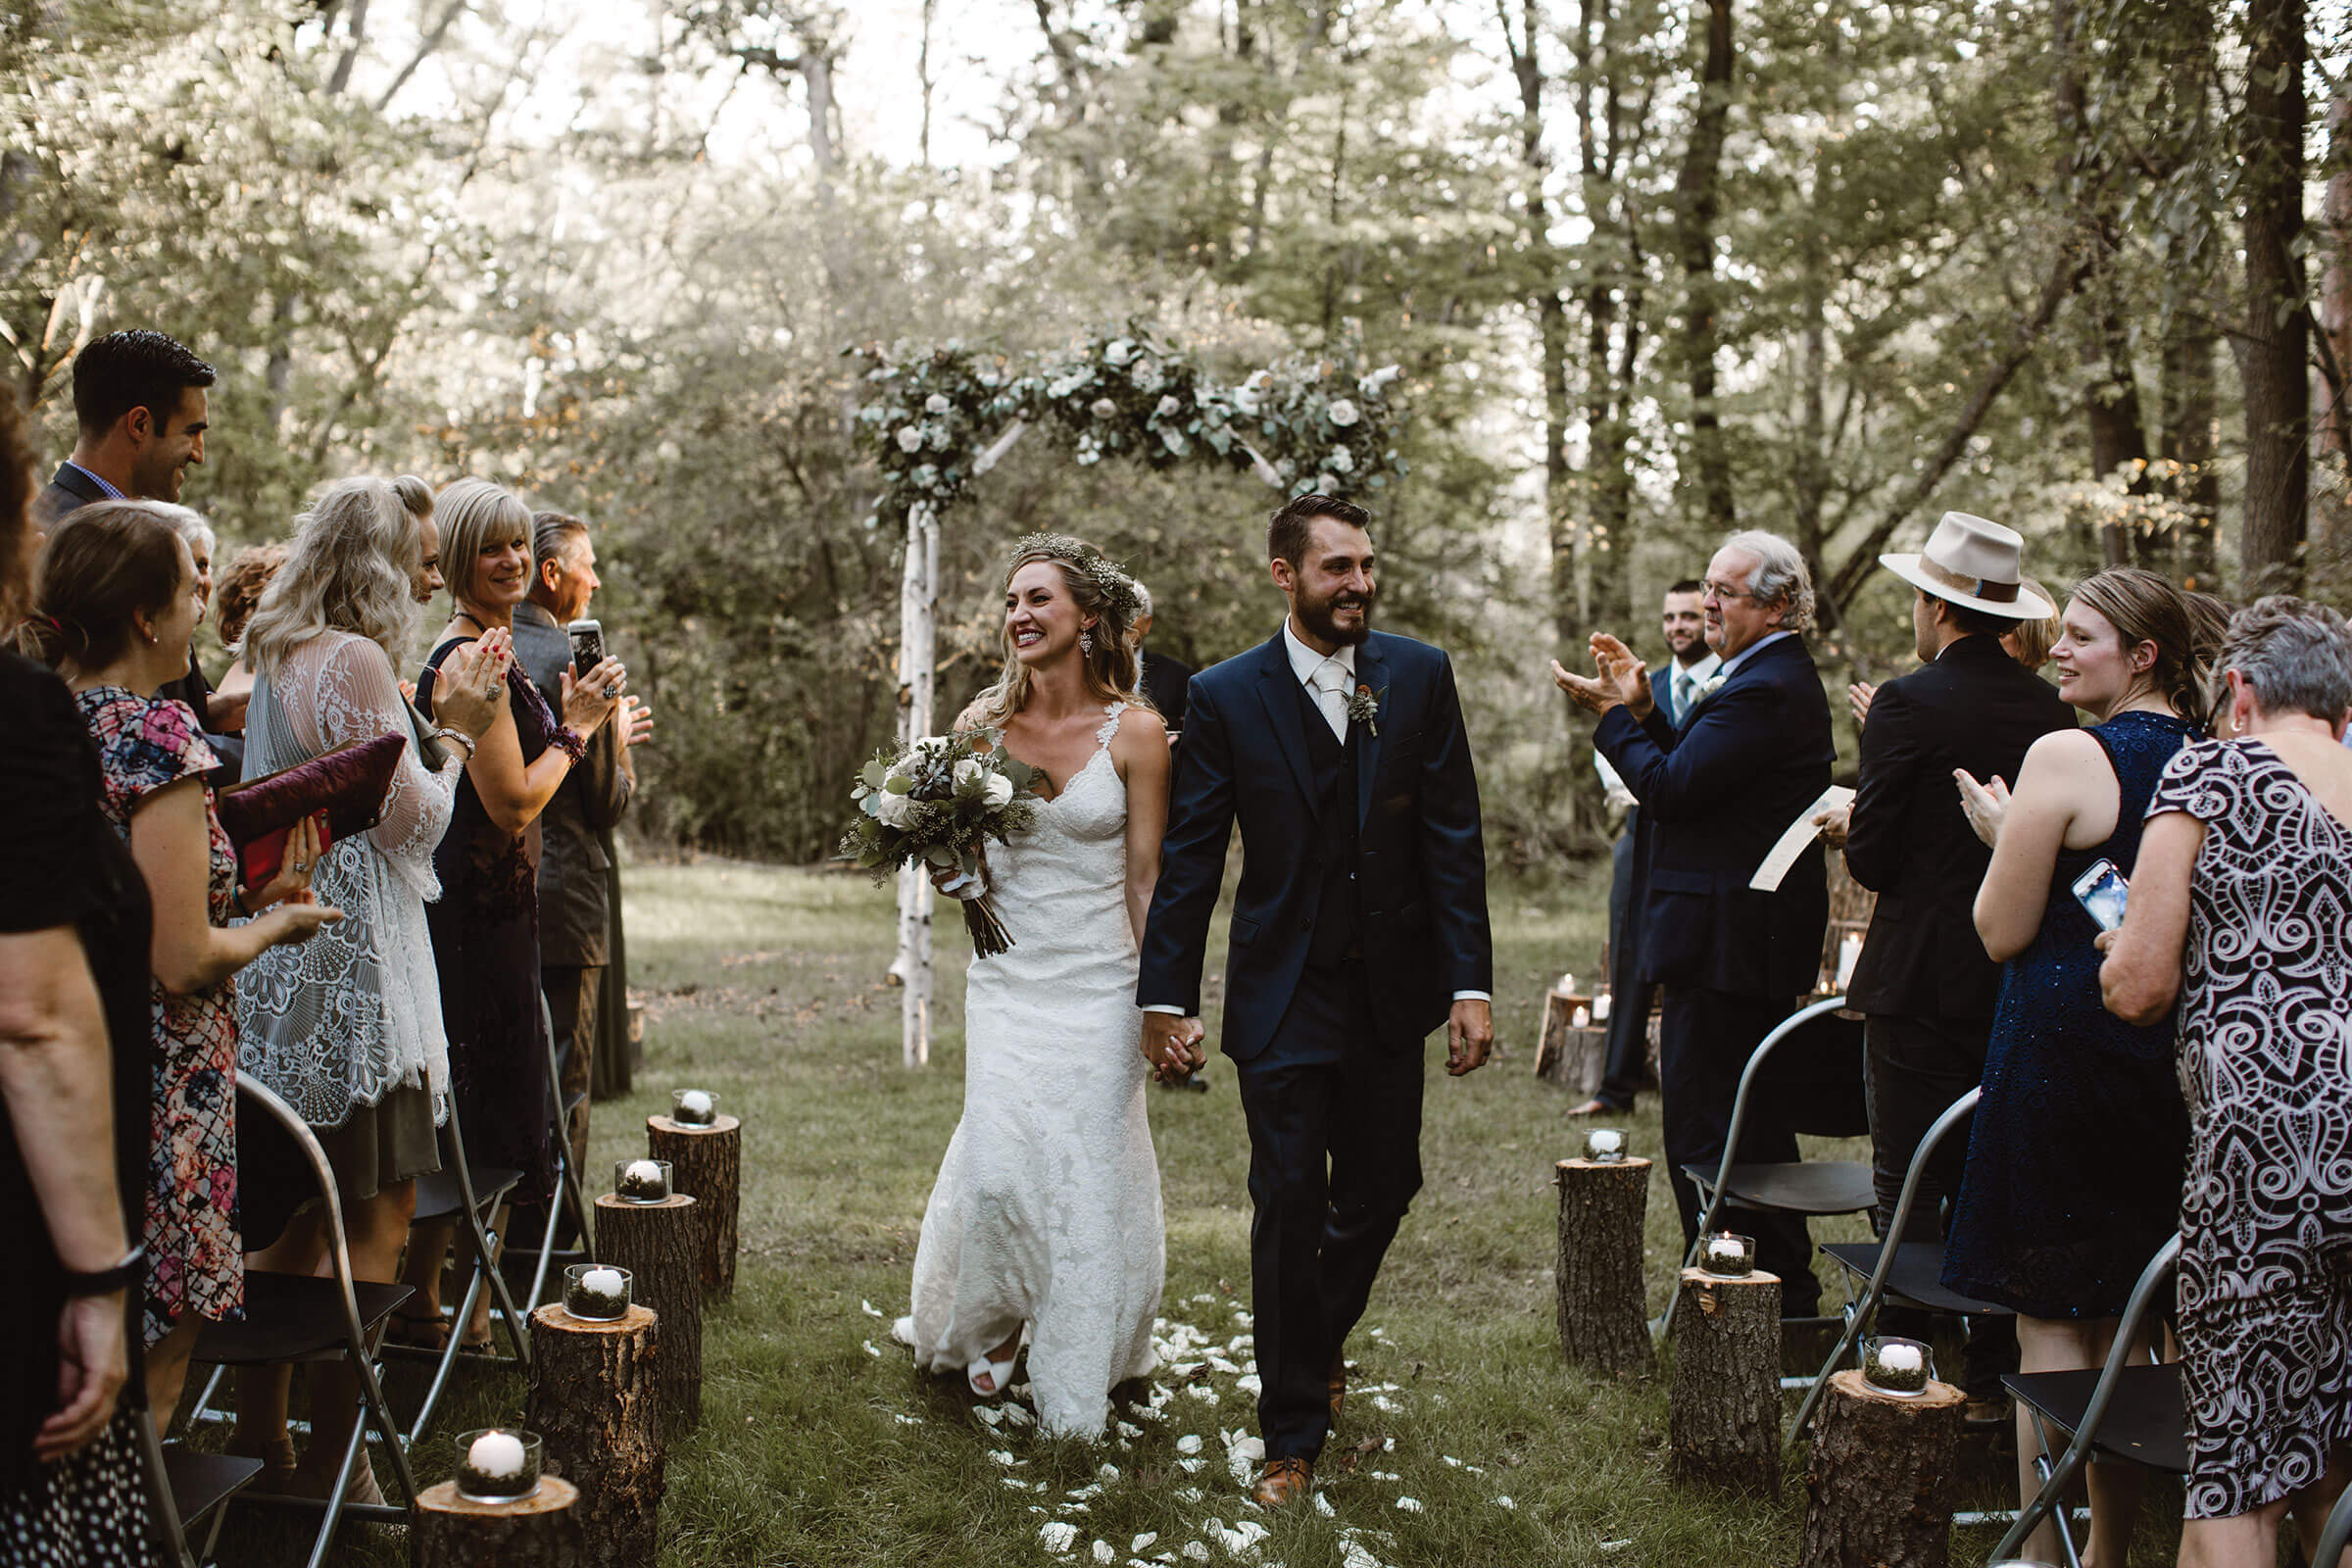 Adrienne + Britton - An enchanted wedding under a canopy of tall pine trees full of greenery, succulents, flowers and glowing candles is purely mystical.